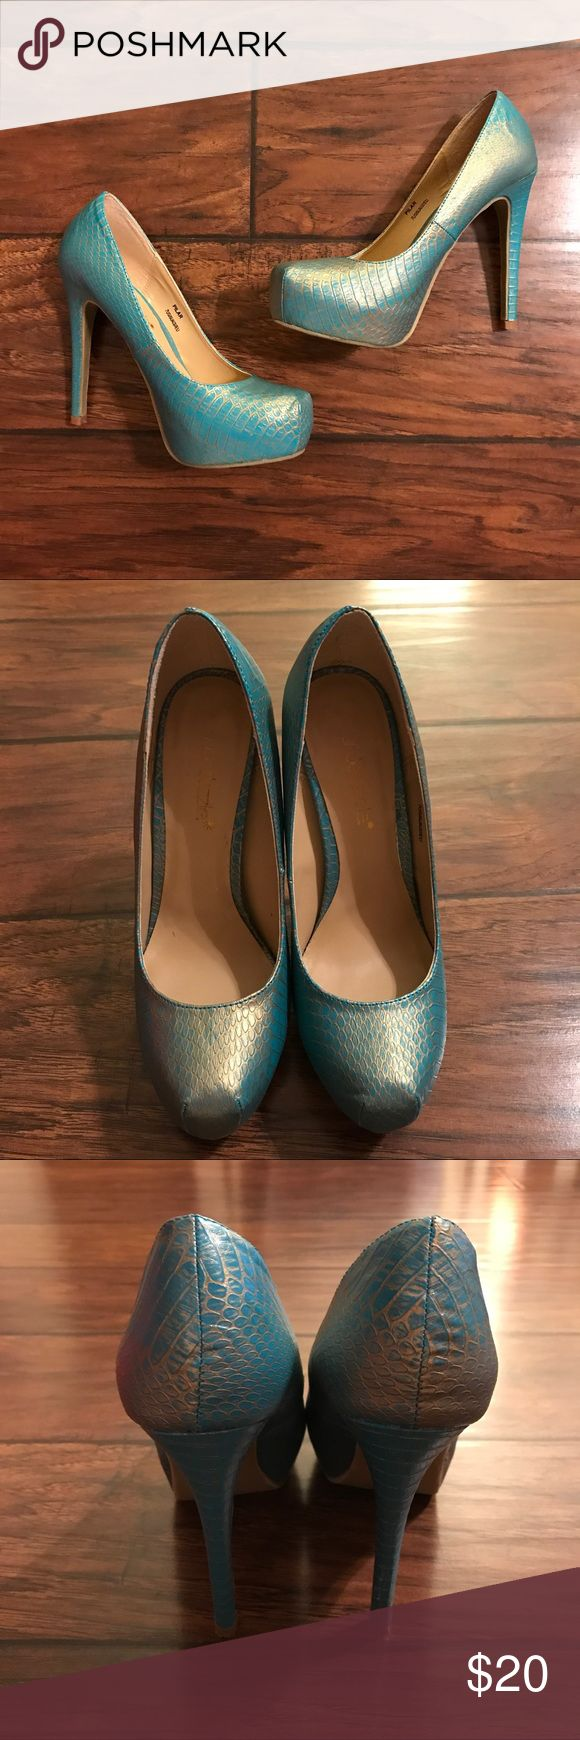 Shoe Dazzle Teal and Gold Snakeskin Pattern Heels Super cool Teal and Gold snakeskin pattern heels in excellent used condition! Come with original box Shoe Dazzle Shoes Heels